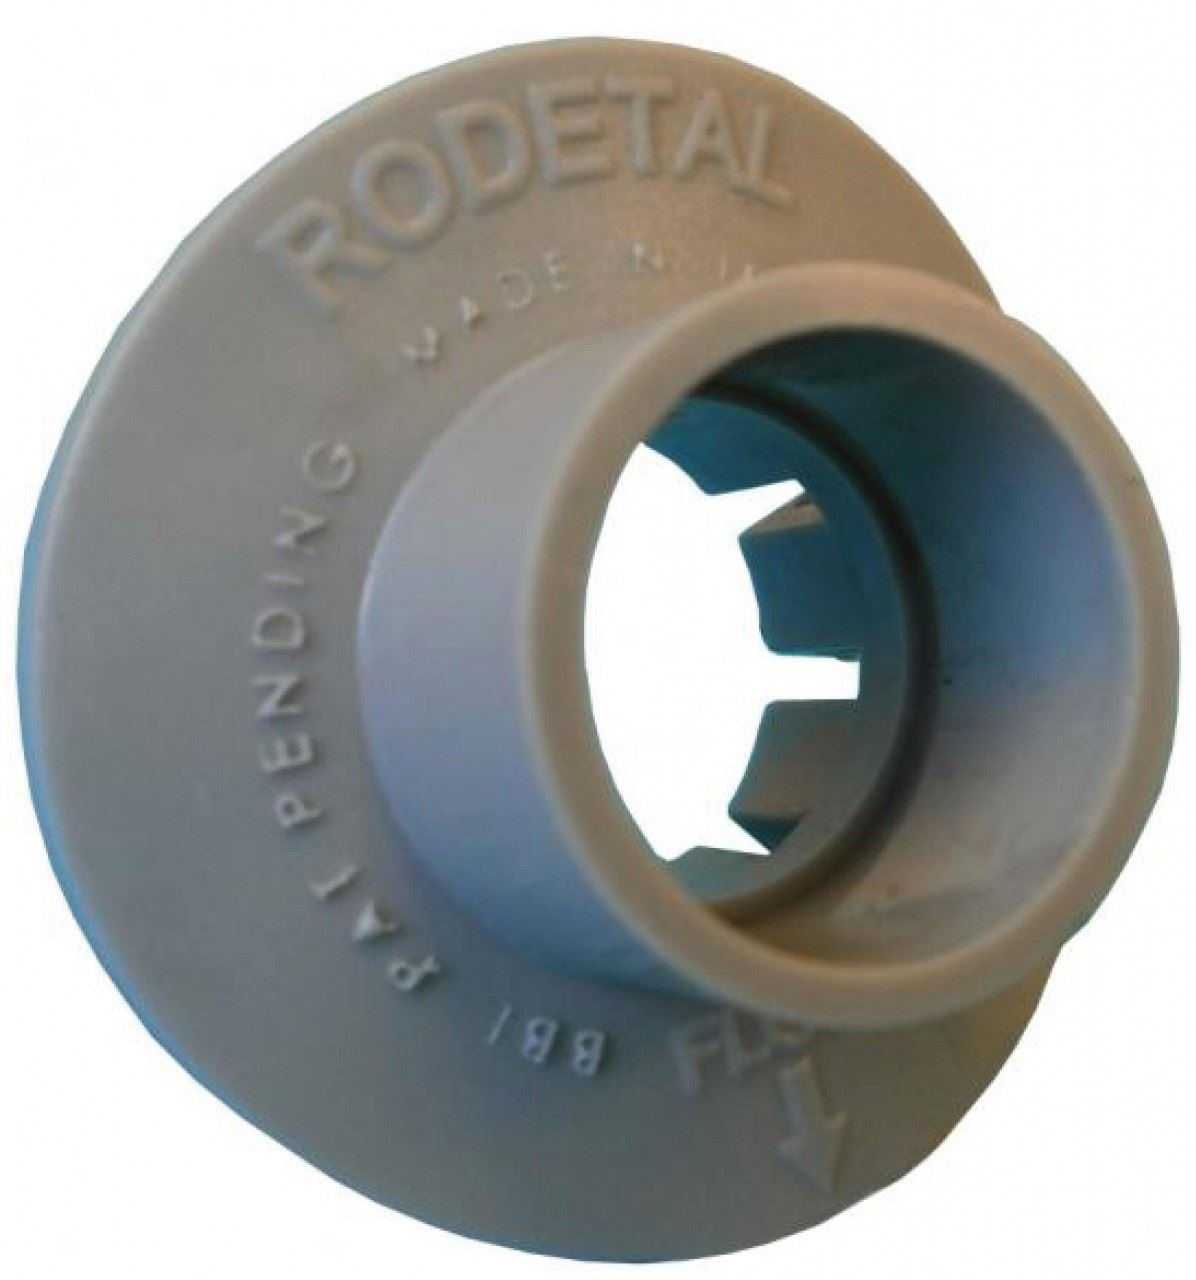 Big Boss Soil Pipe Adaptor - 110mm to 1 1/4